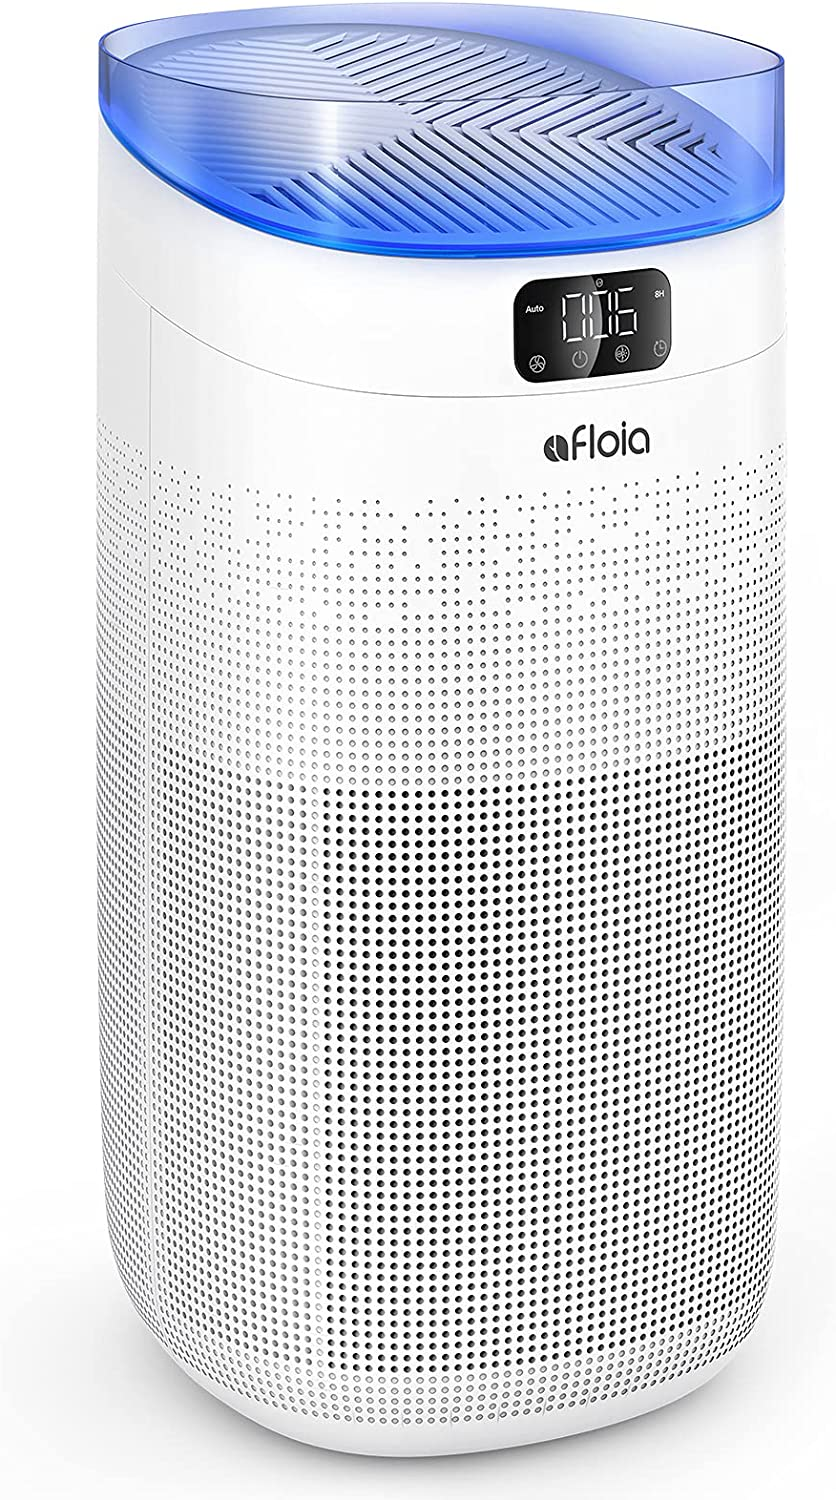 Afloia Smart Air Purifier for Home Large Room about 1000ft², 3-Stage Filtration remove 99.99% Odor/Smoke/Pet Dander, 25dB Air Cleaner with H13 True HEPA Filter Auto Mode/Night Light/Sleep Mode -white